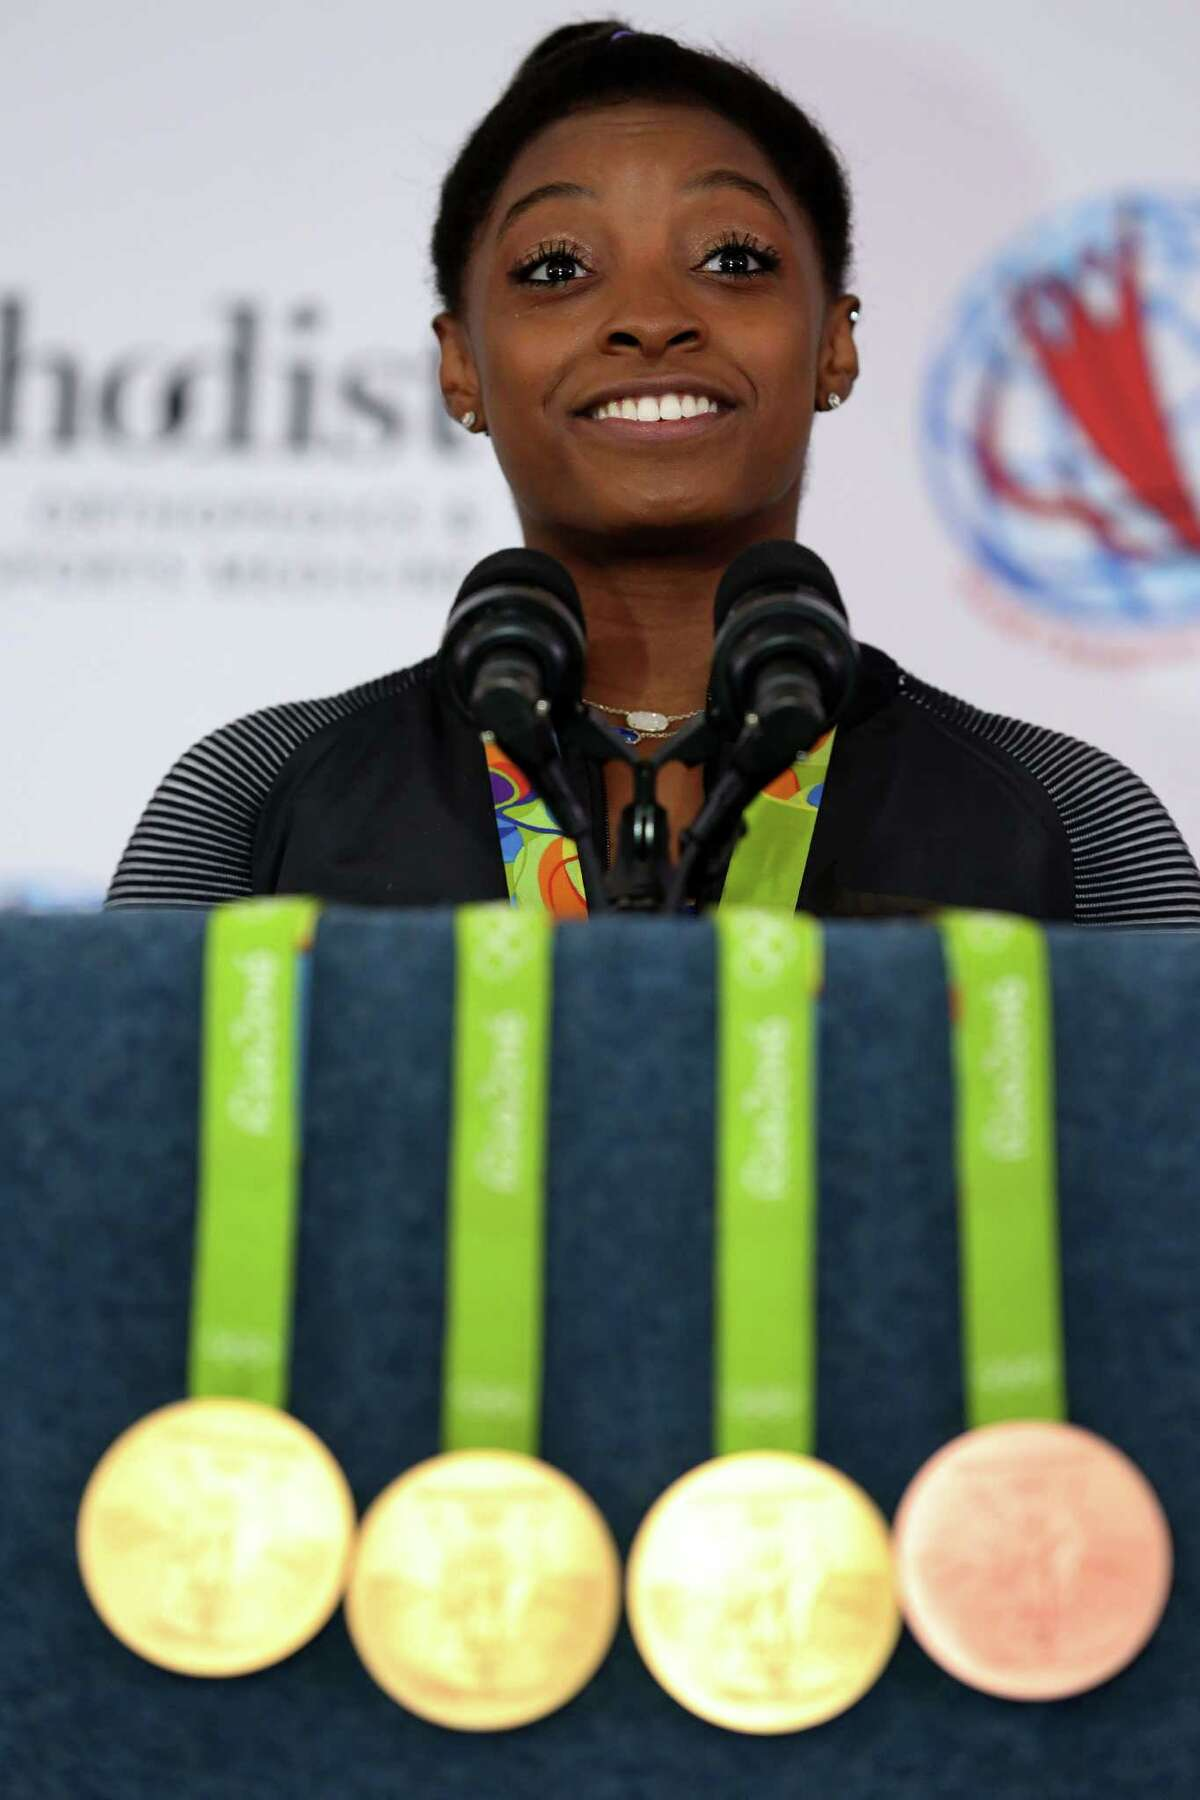 Gymnast Simone Biles hopes to add to her collection in the 2020 Olympics.